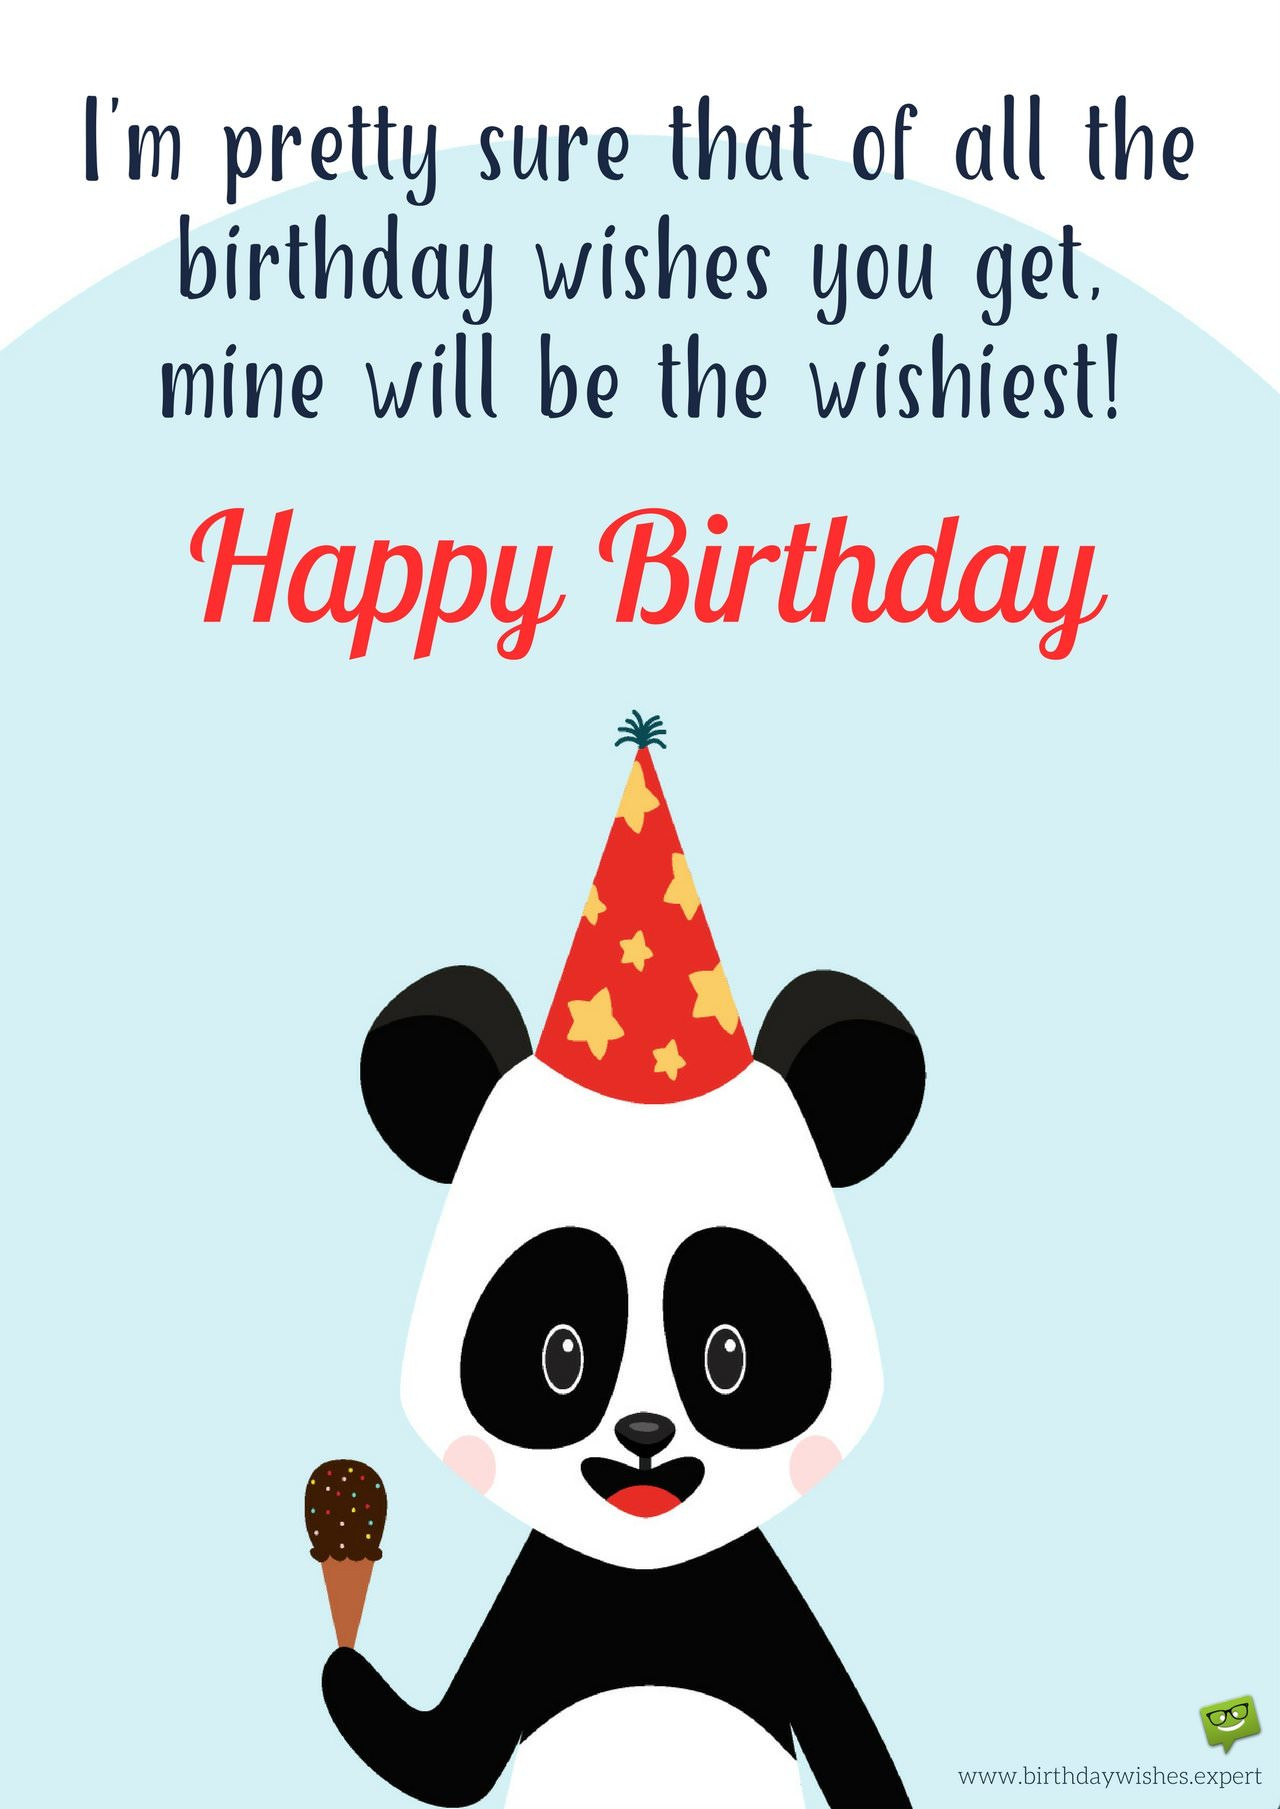 Best ideas about Funny Happy Birthday Wishes . Save or Pin The Funniest Wishes to Make your Wife Smile on her Birthday Now.